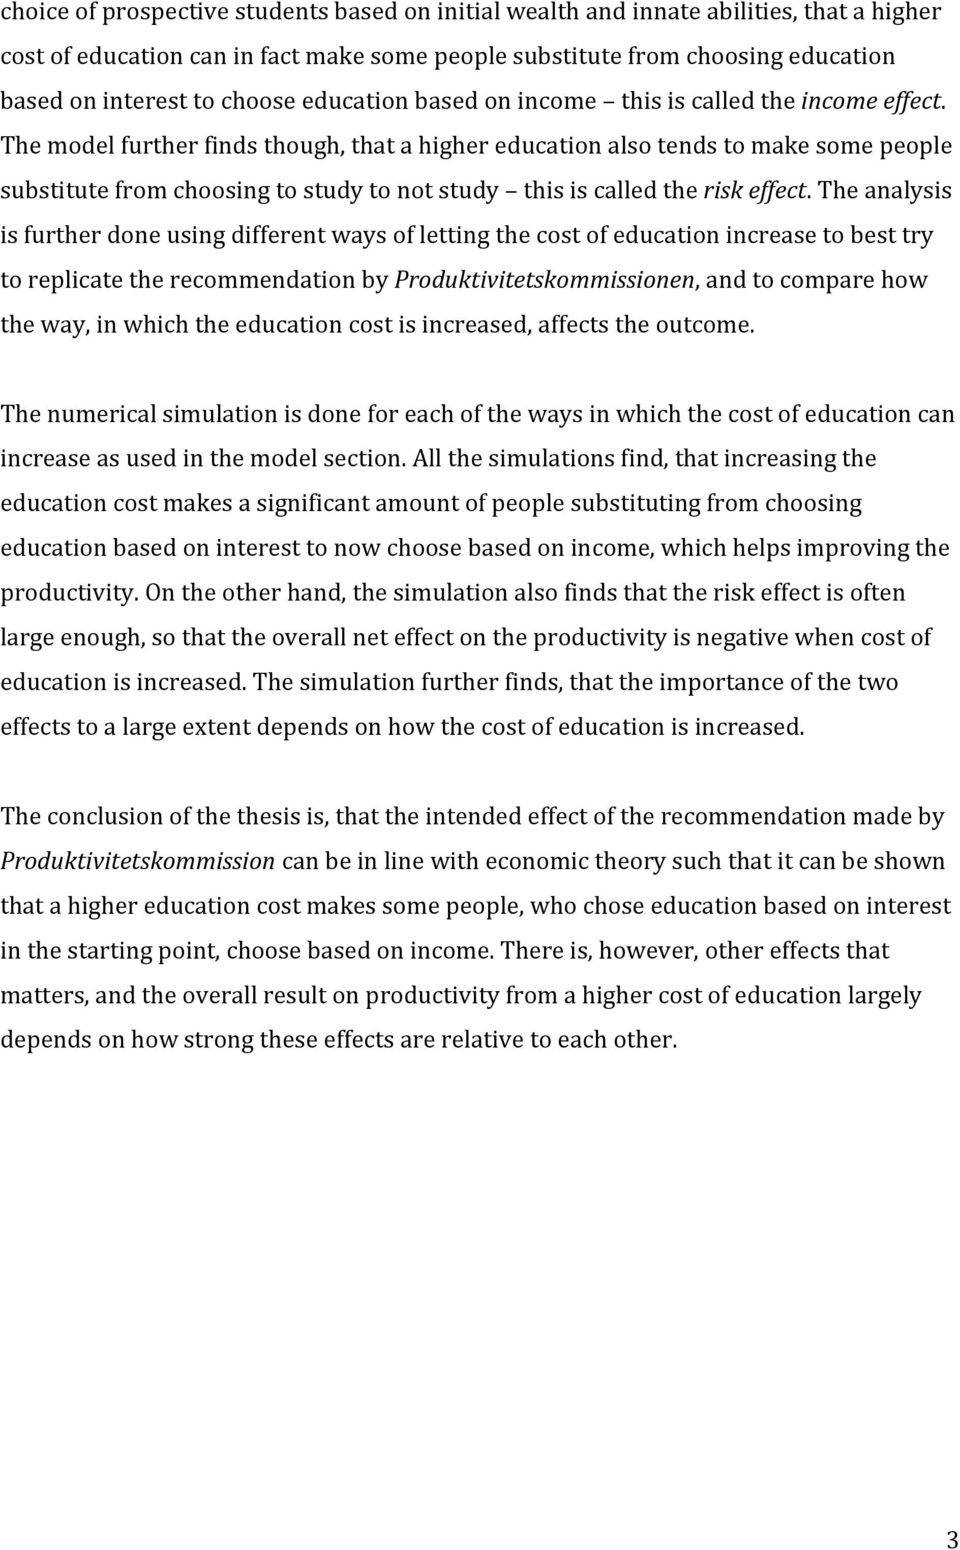 The model further finds though, that a higher education also tends to make some people substitute from choosing to study to not study this is called the risk effect.